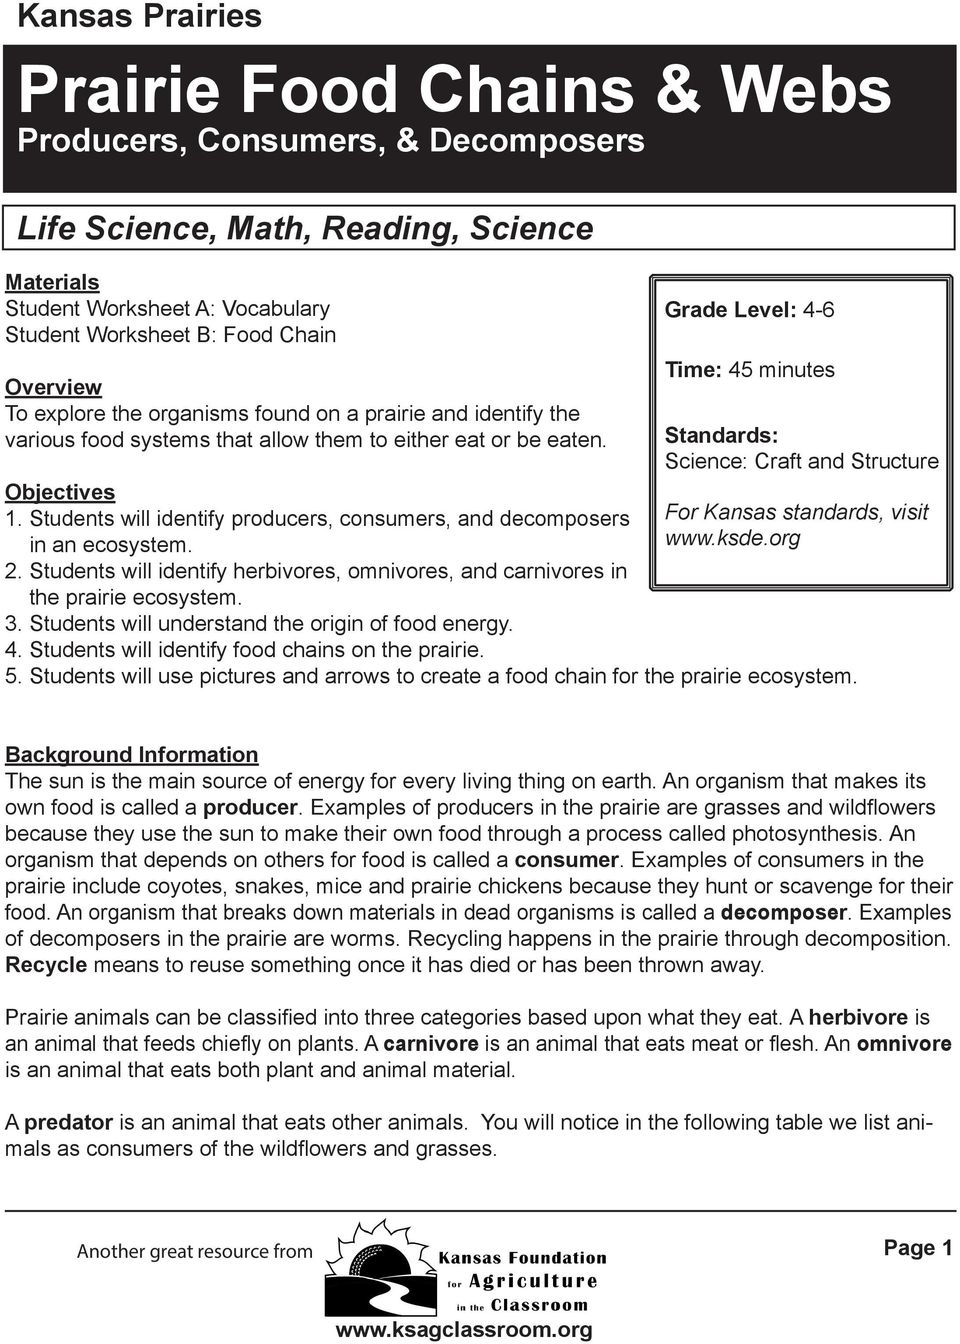 Worksheets Producers Consumers And Decomposers Worksheet prairie food chains webs producers consumers decomposers pdf grade level 4 6 time 45 minutes standards science craft and